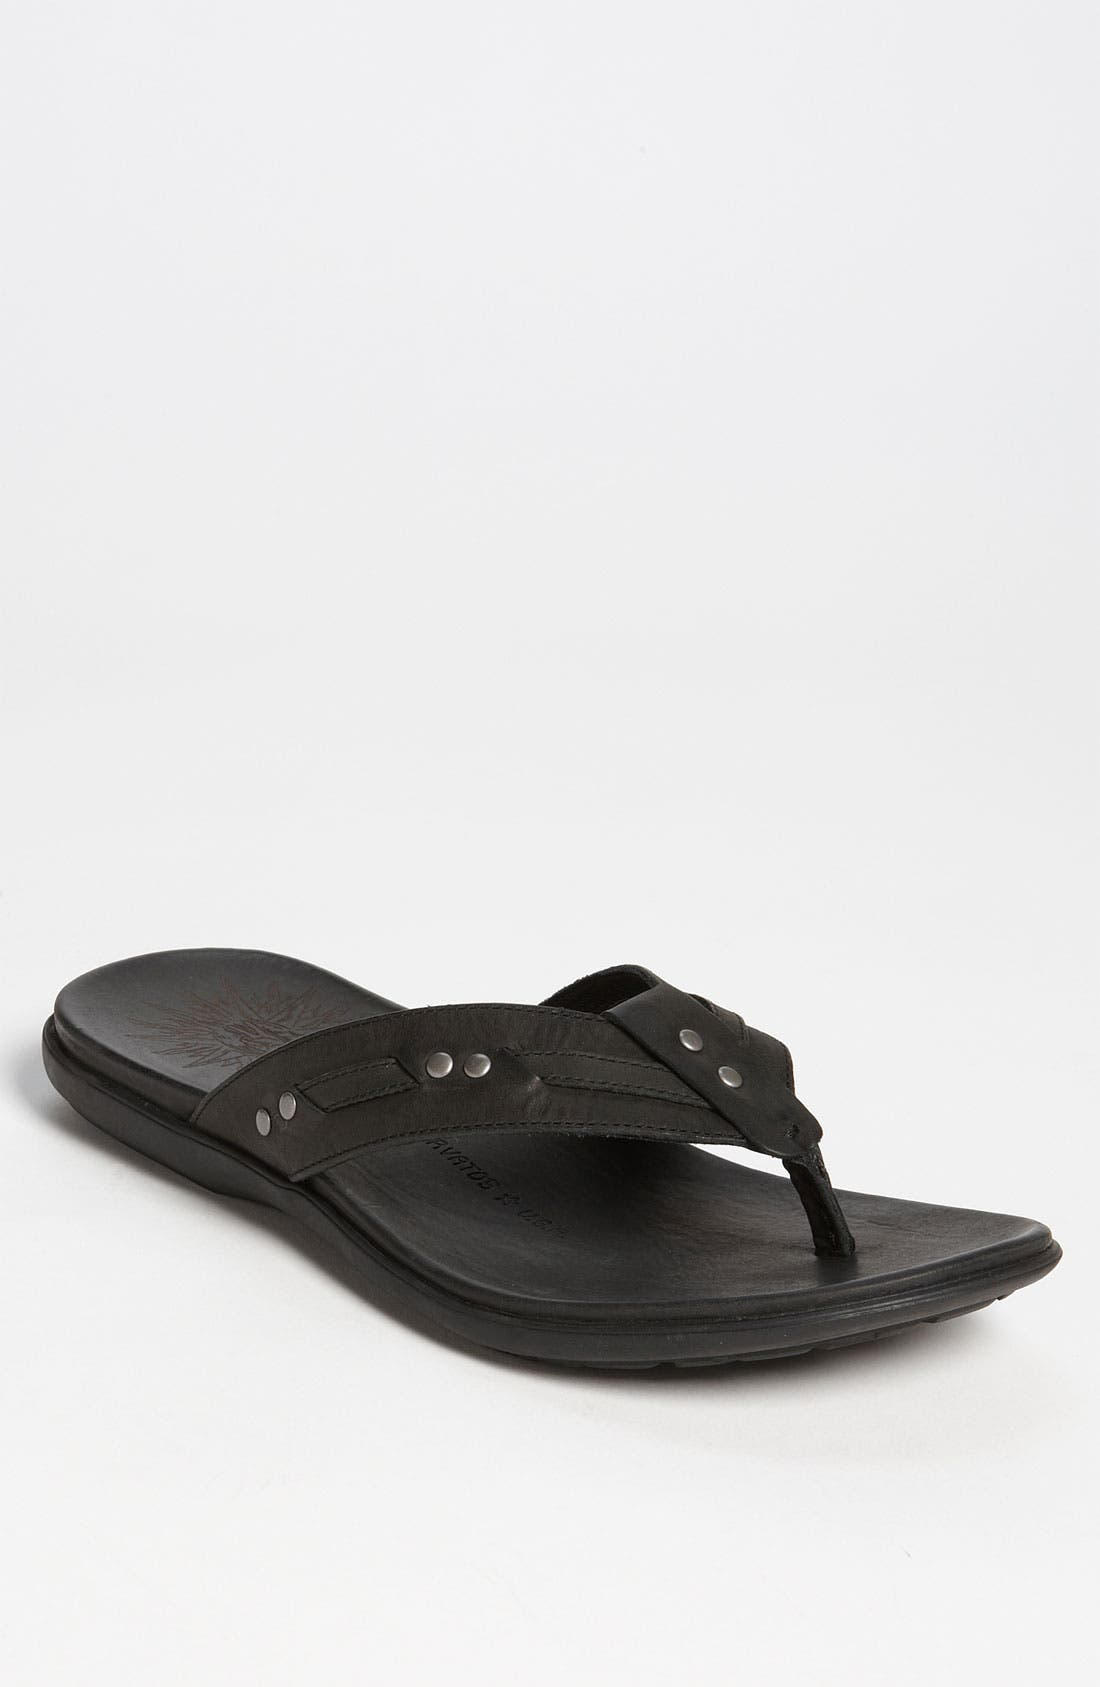 Alternate Image 1 Selected - John Varvatos Star USA 'Tobago Stud' Sandal